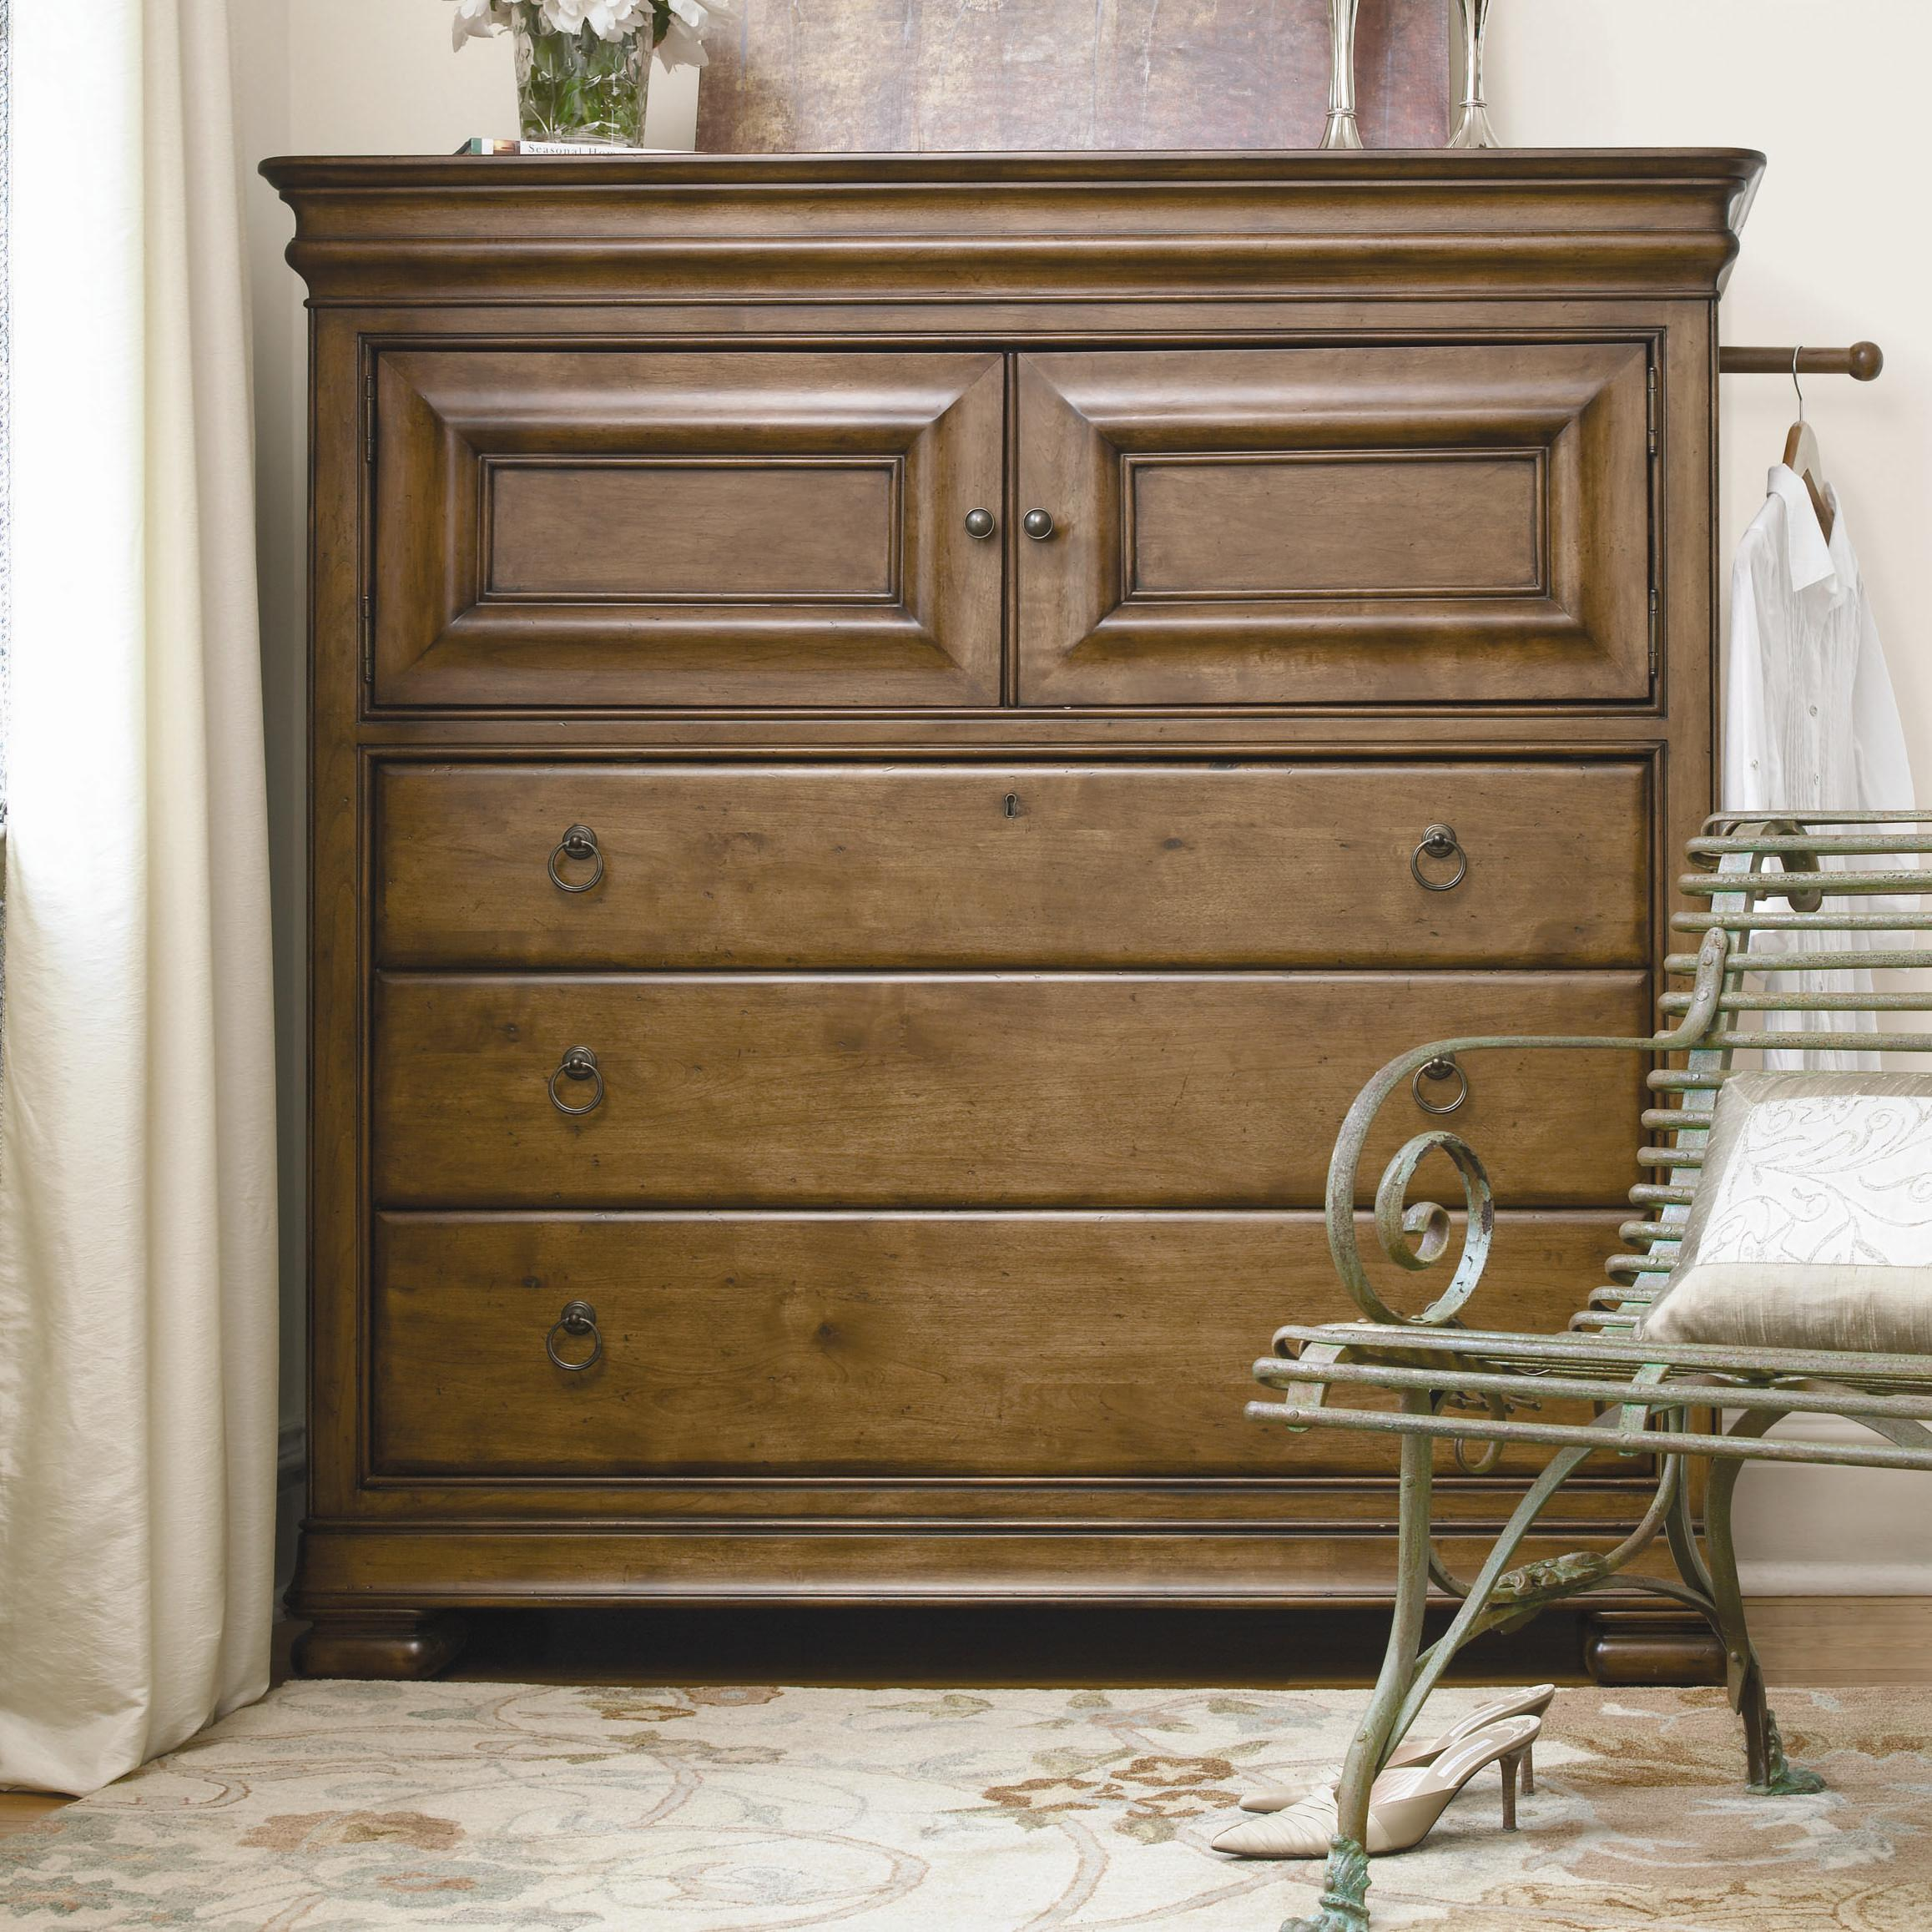 Morris Home Furnishings Newton Falls Newton Falls Dressing Chest - Item Number: 071175